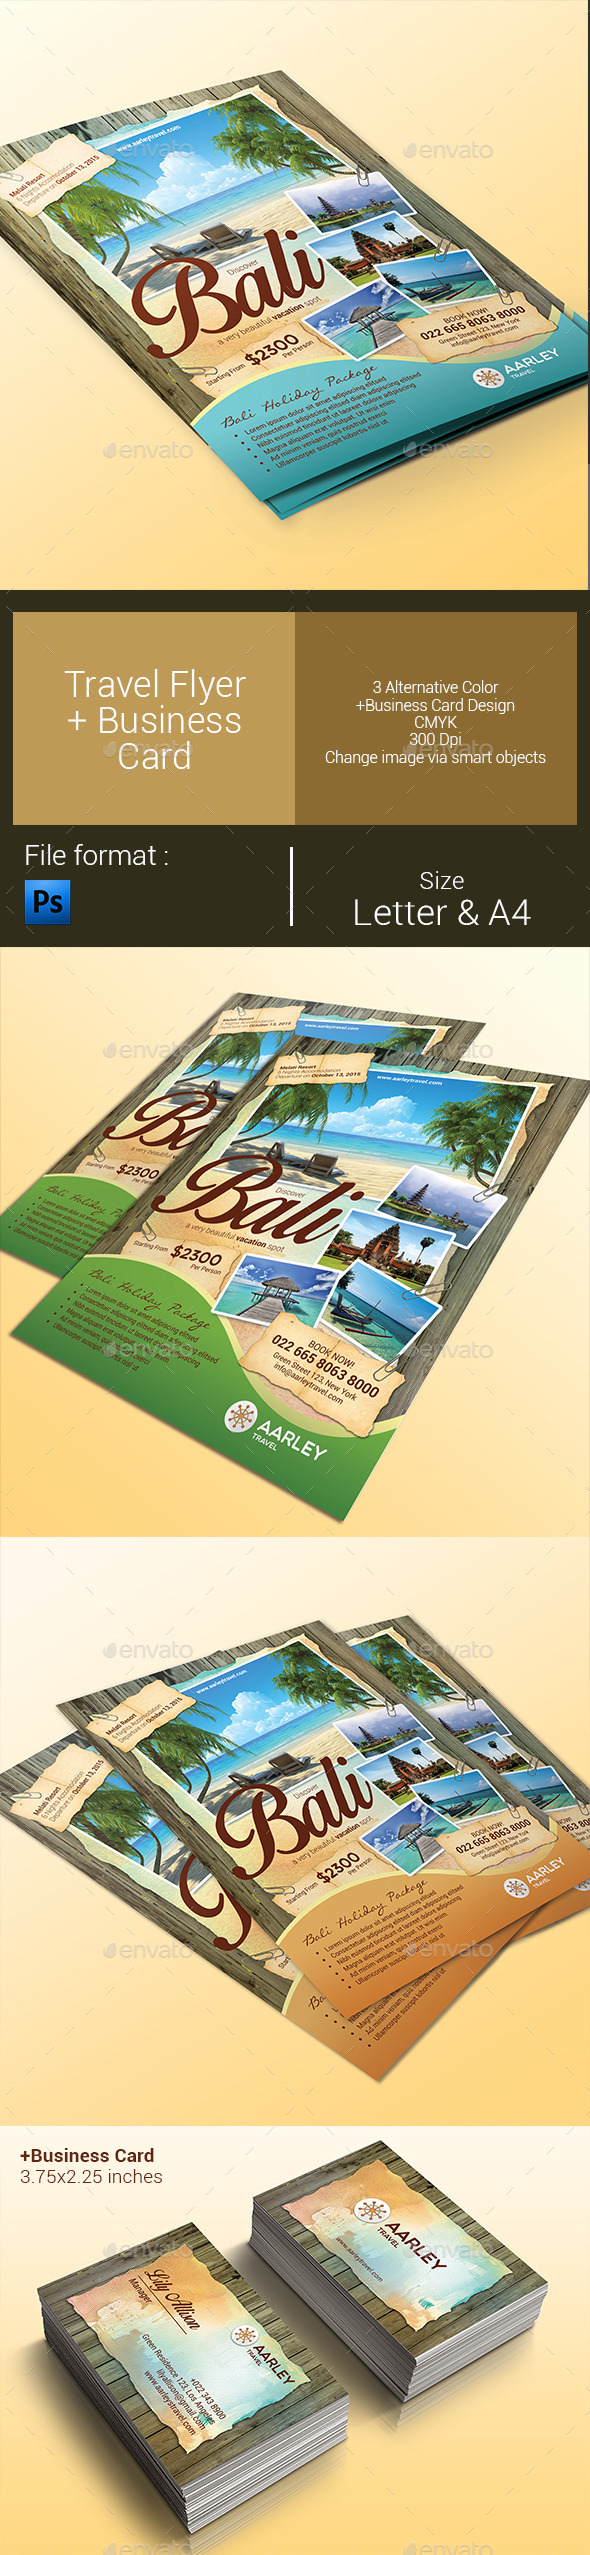 GraphicRiver Travel Flyer & Business Card 9929864